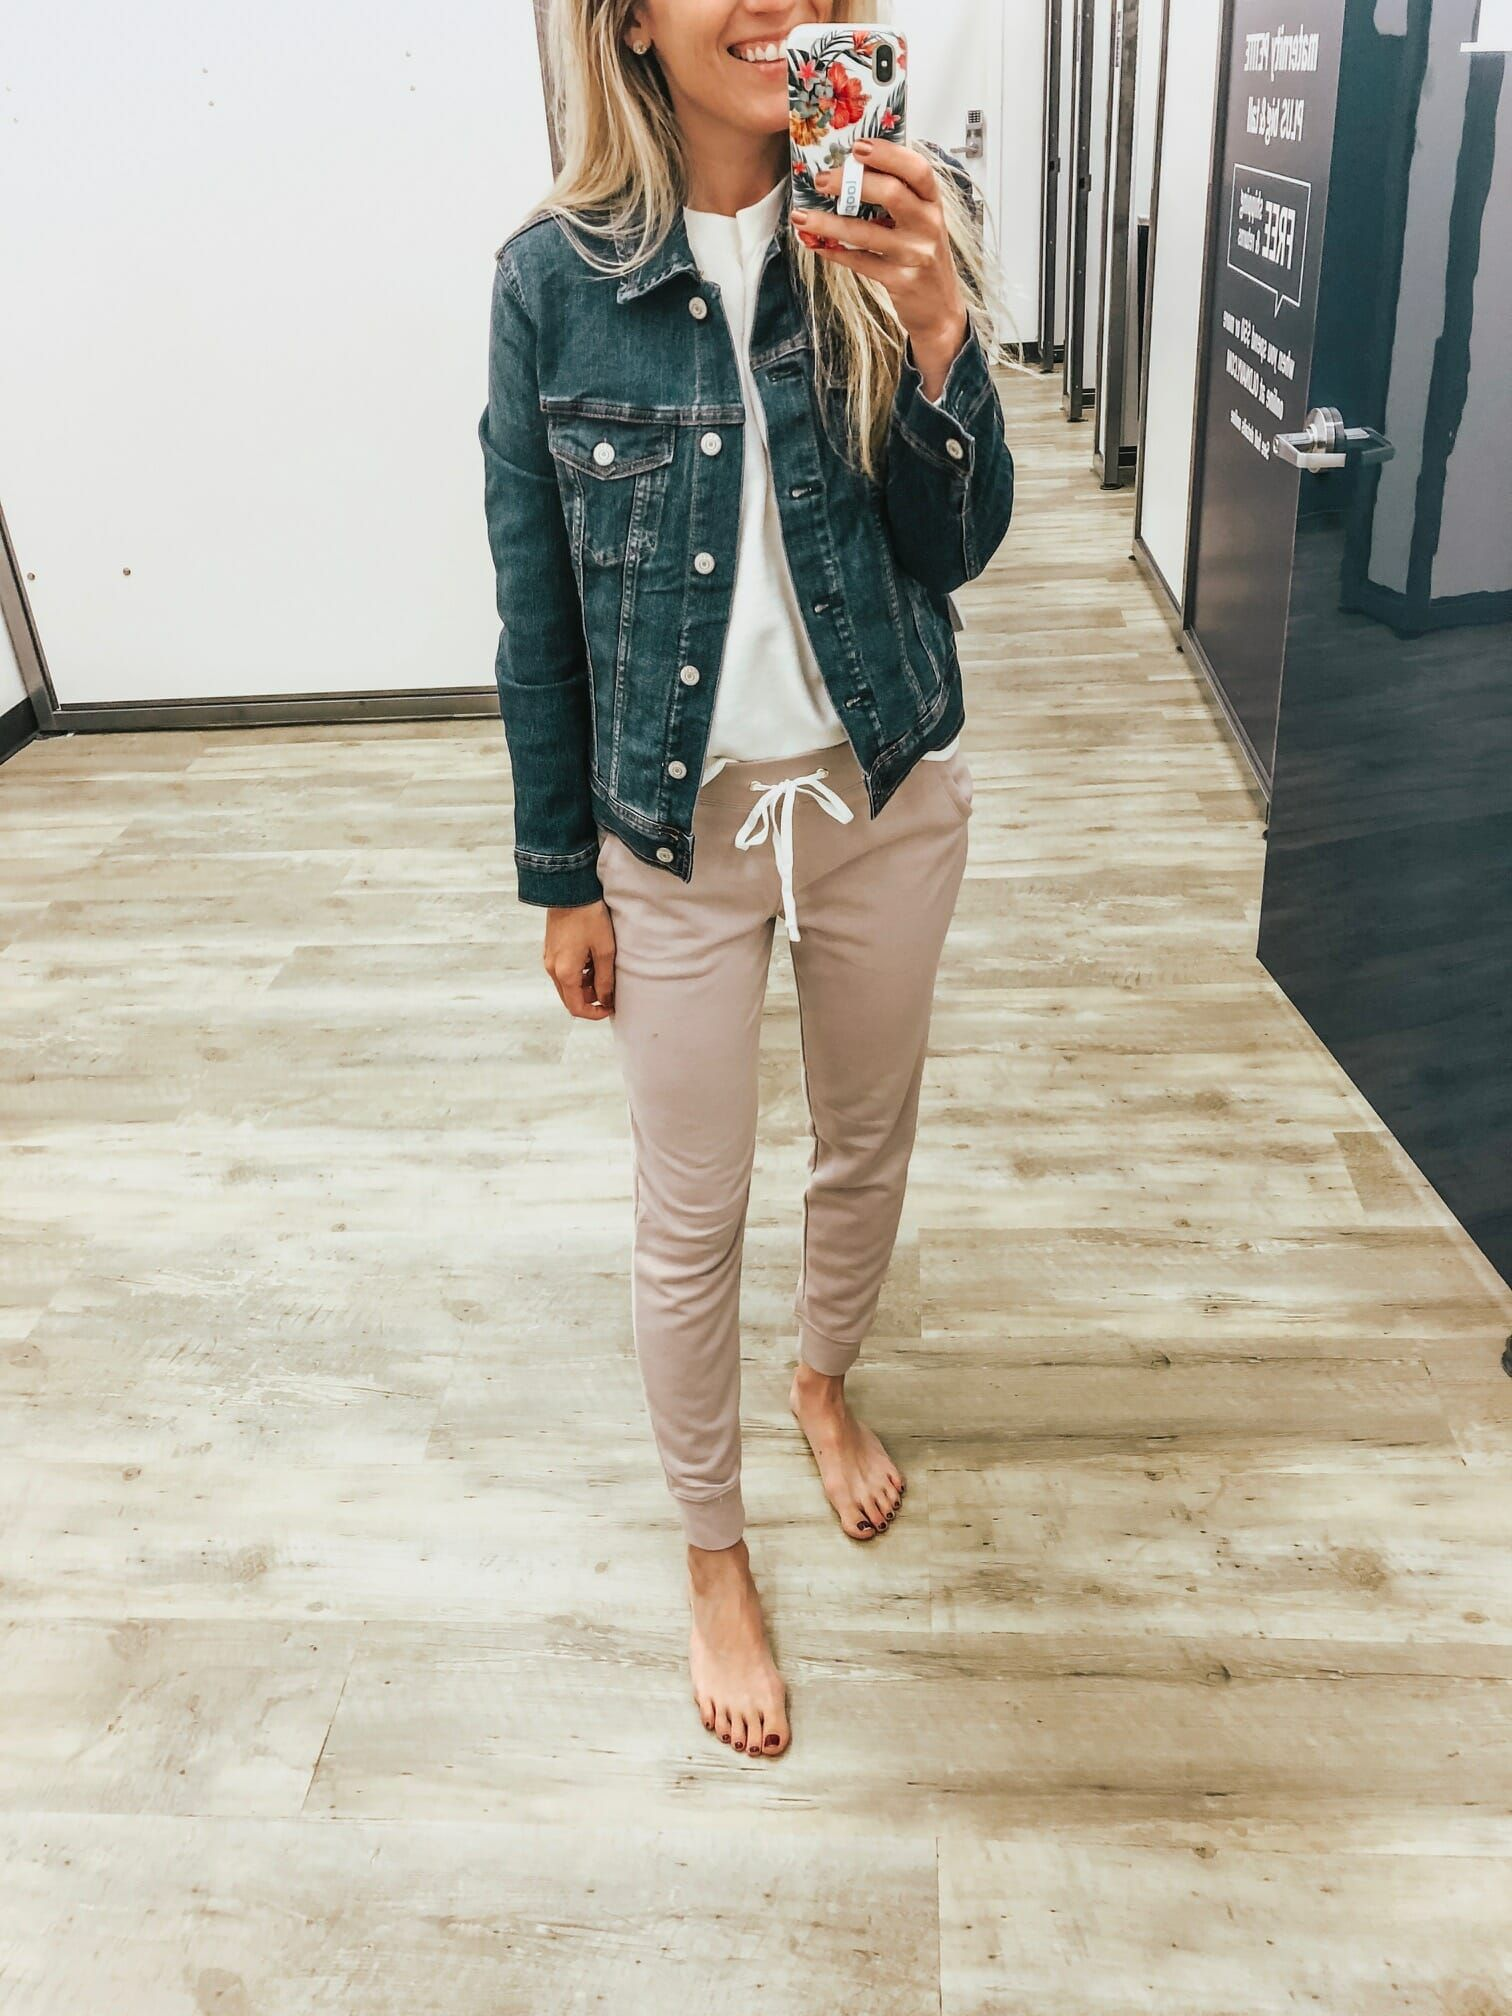 25+ Old navy mom jeans ideas info